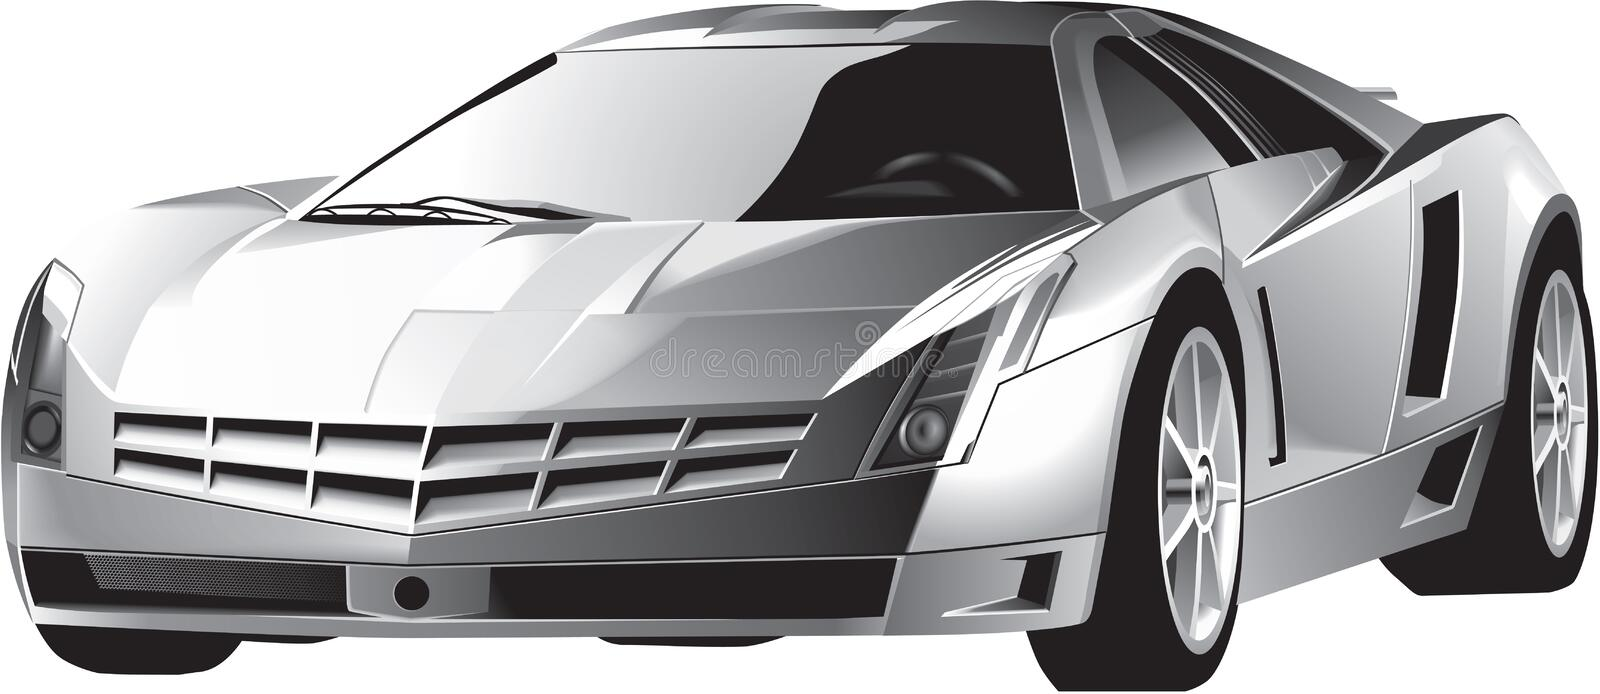 Luxury fast driving sports car. Luxury grey steel modern fast driving sports car with highlight on the front window, xenon headlights. Lifelike detailed vector vector illustration